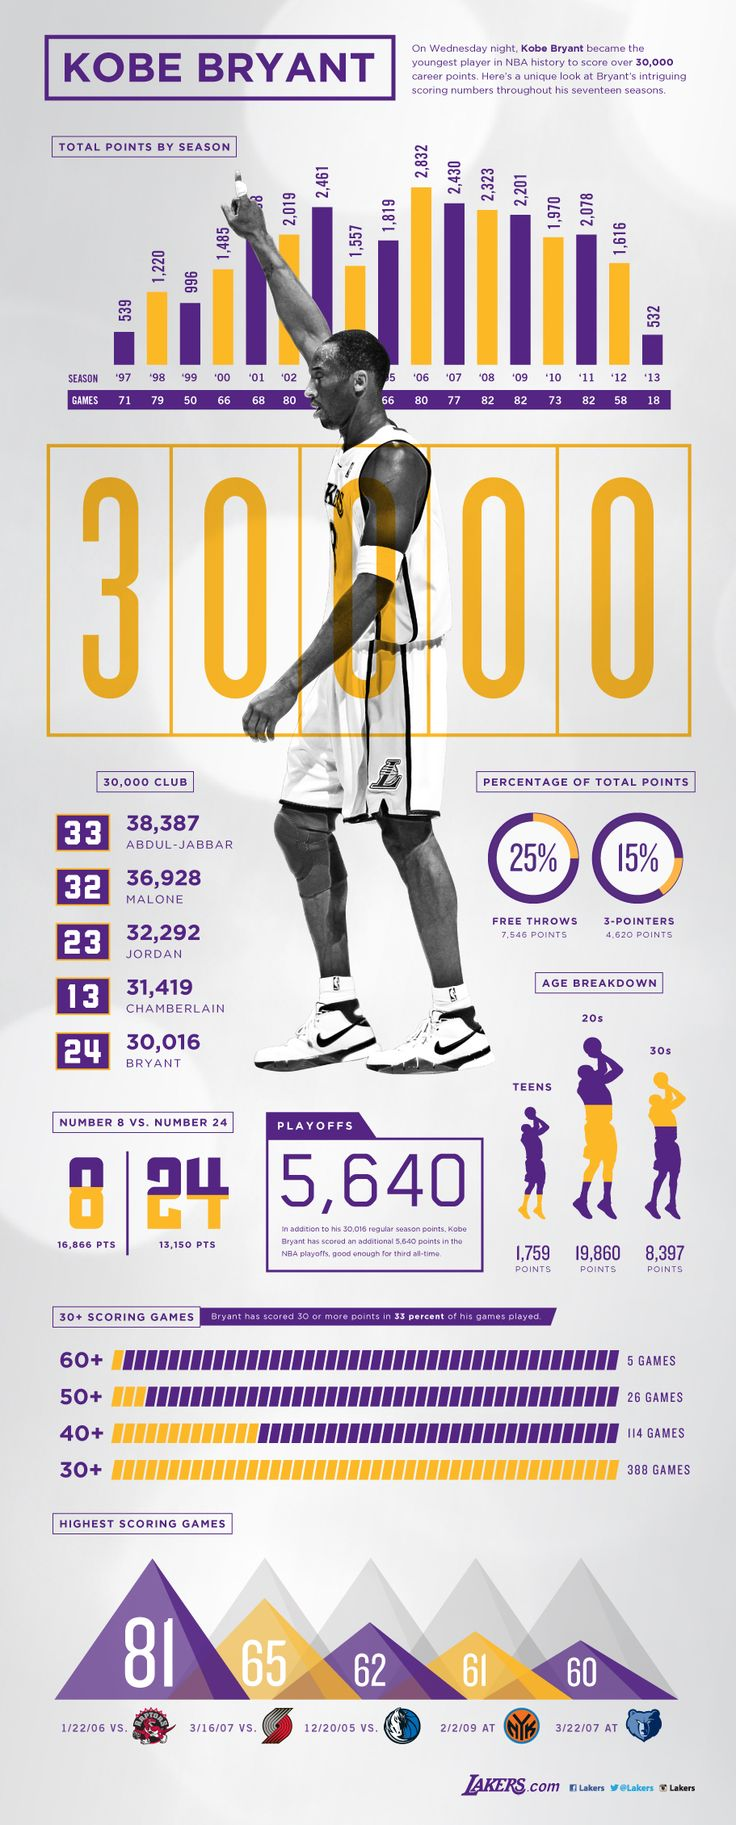 Kobe Bryant the youngest player in NBA basketball history to score over 30,000 career points.